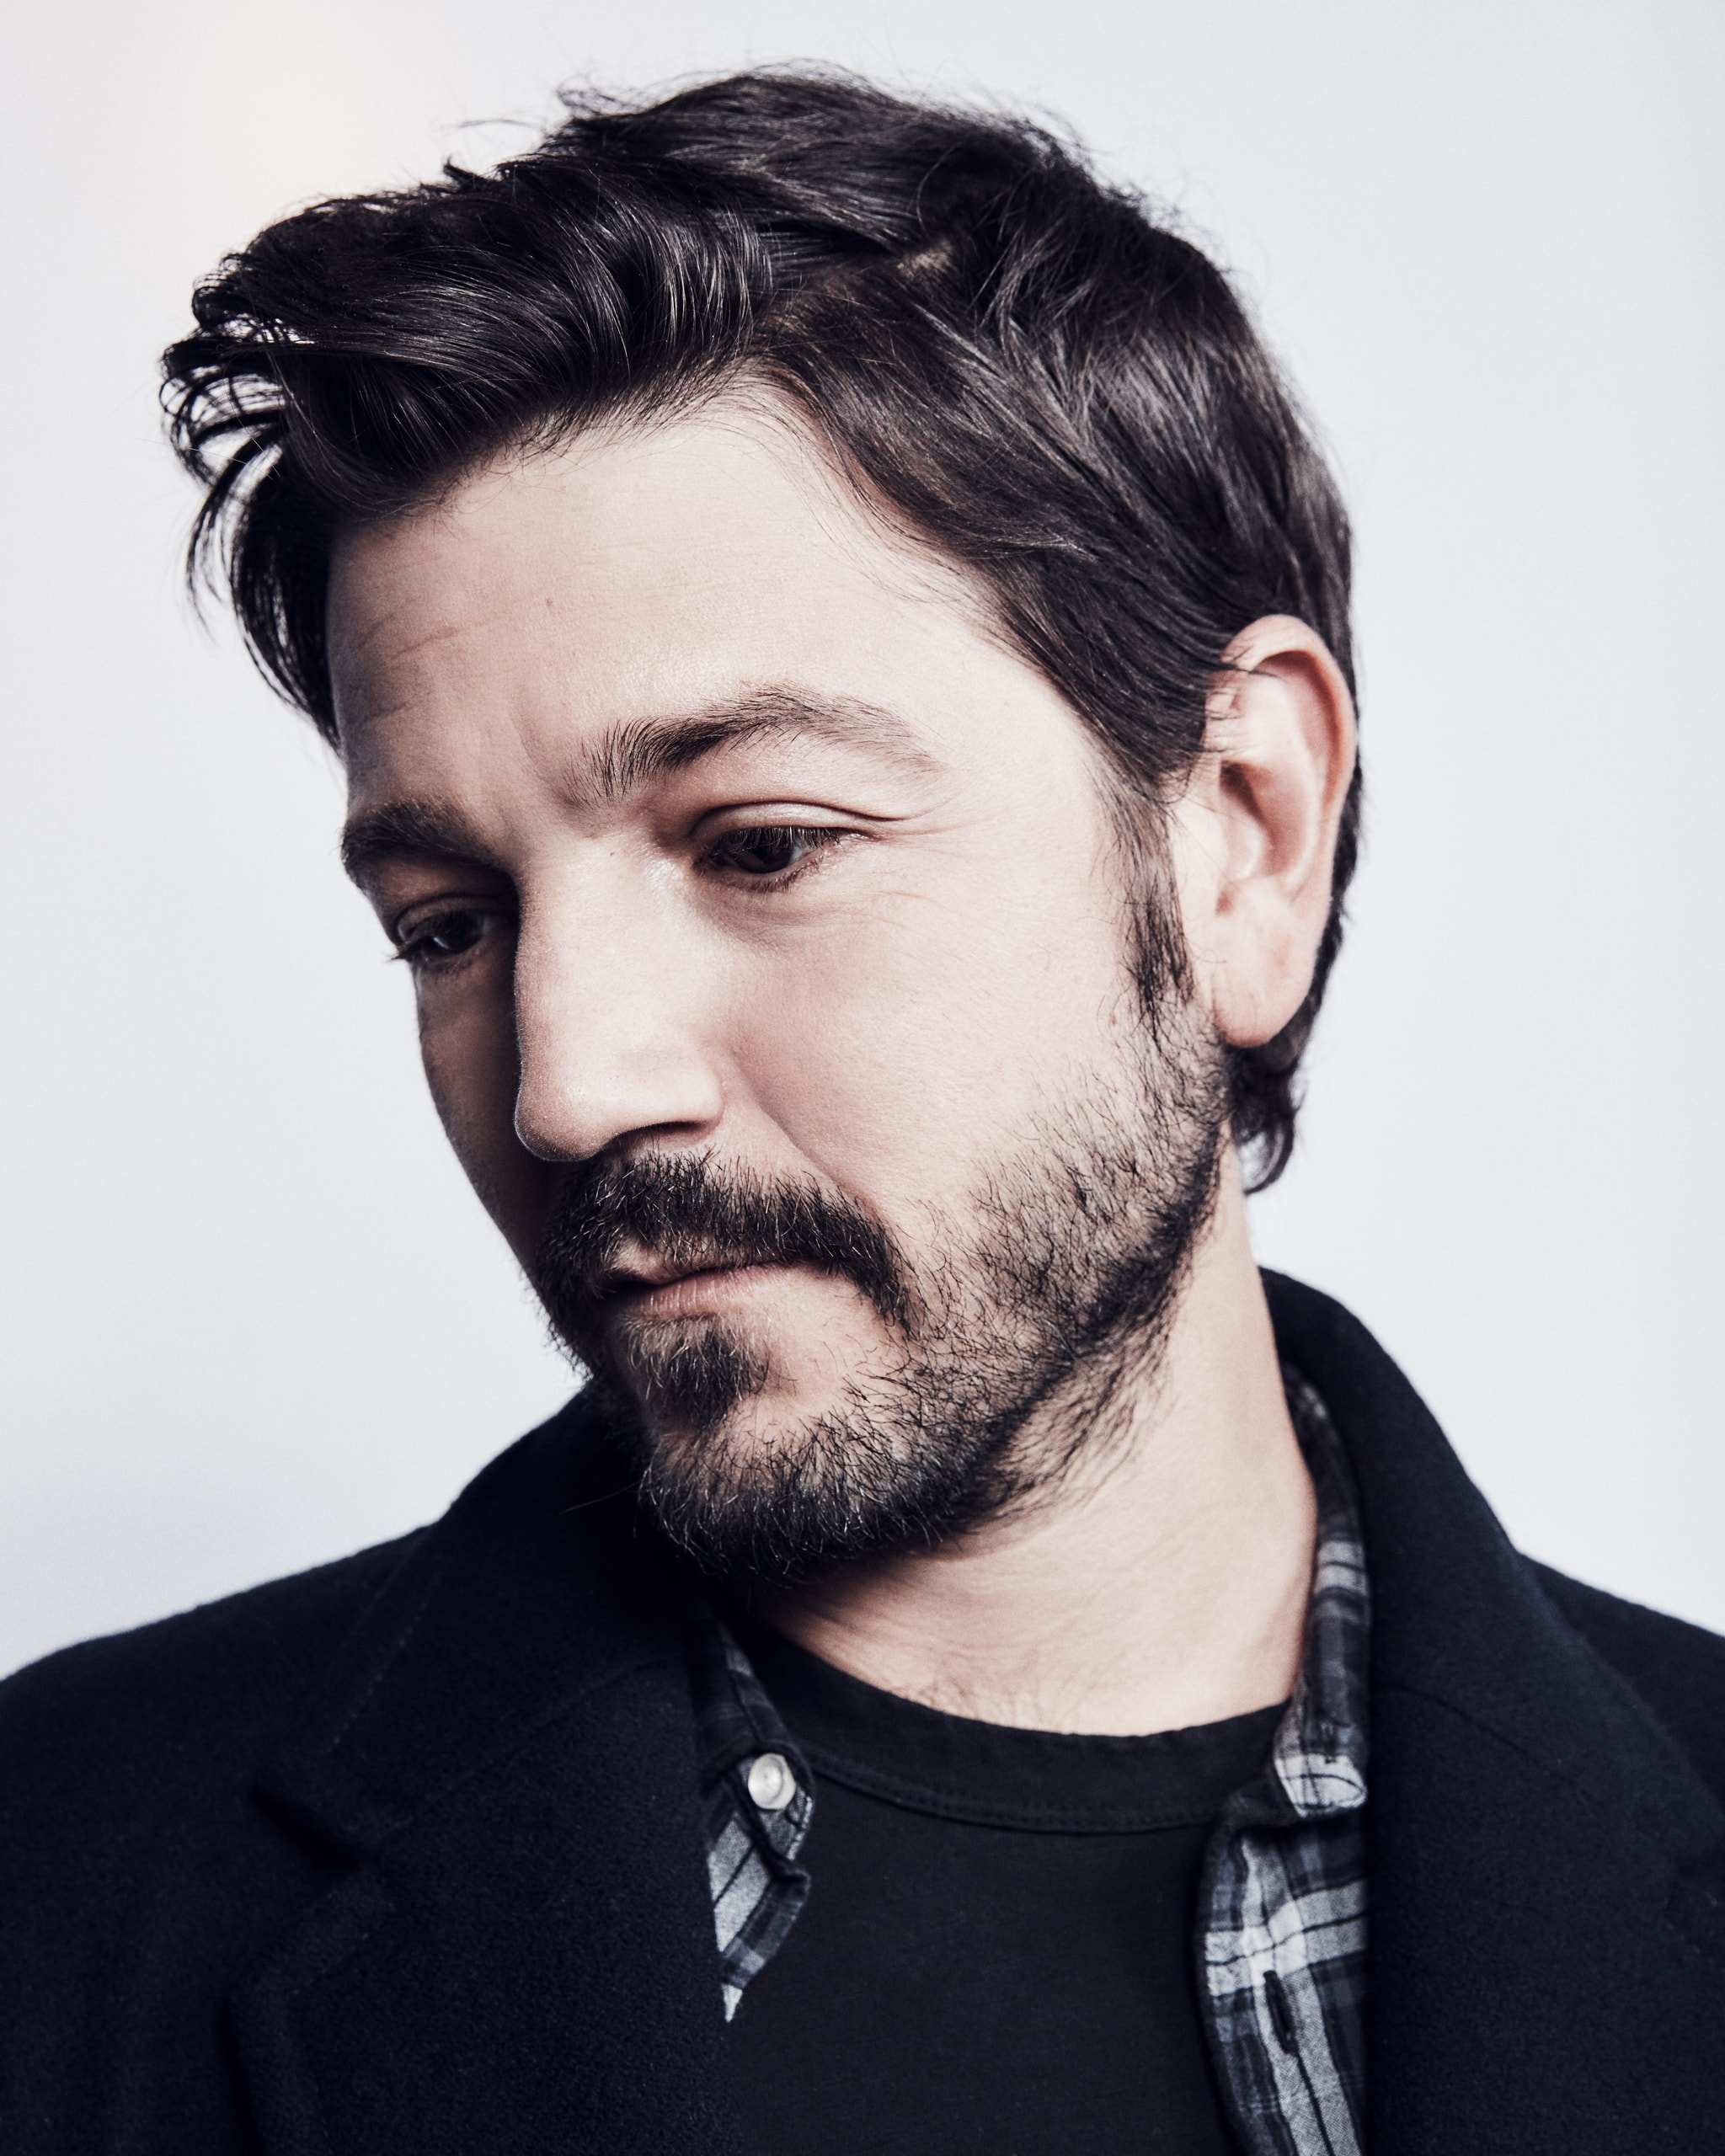 FOR MAGAZINE USE ONLY Diego Luna